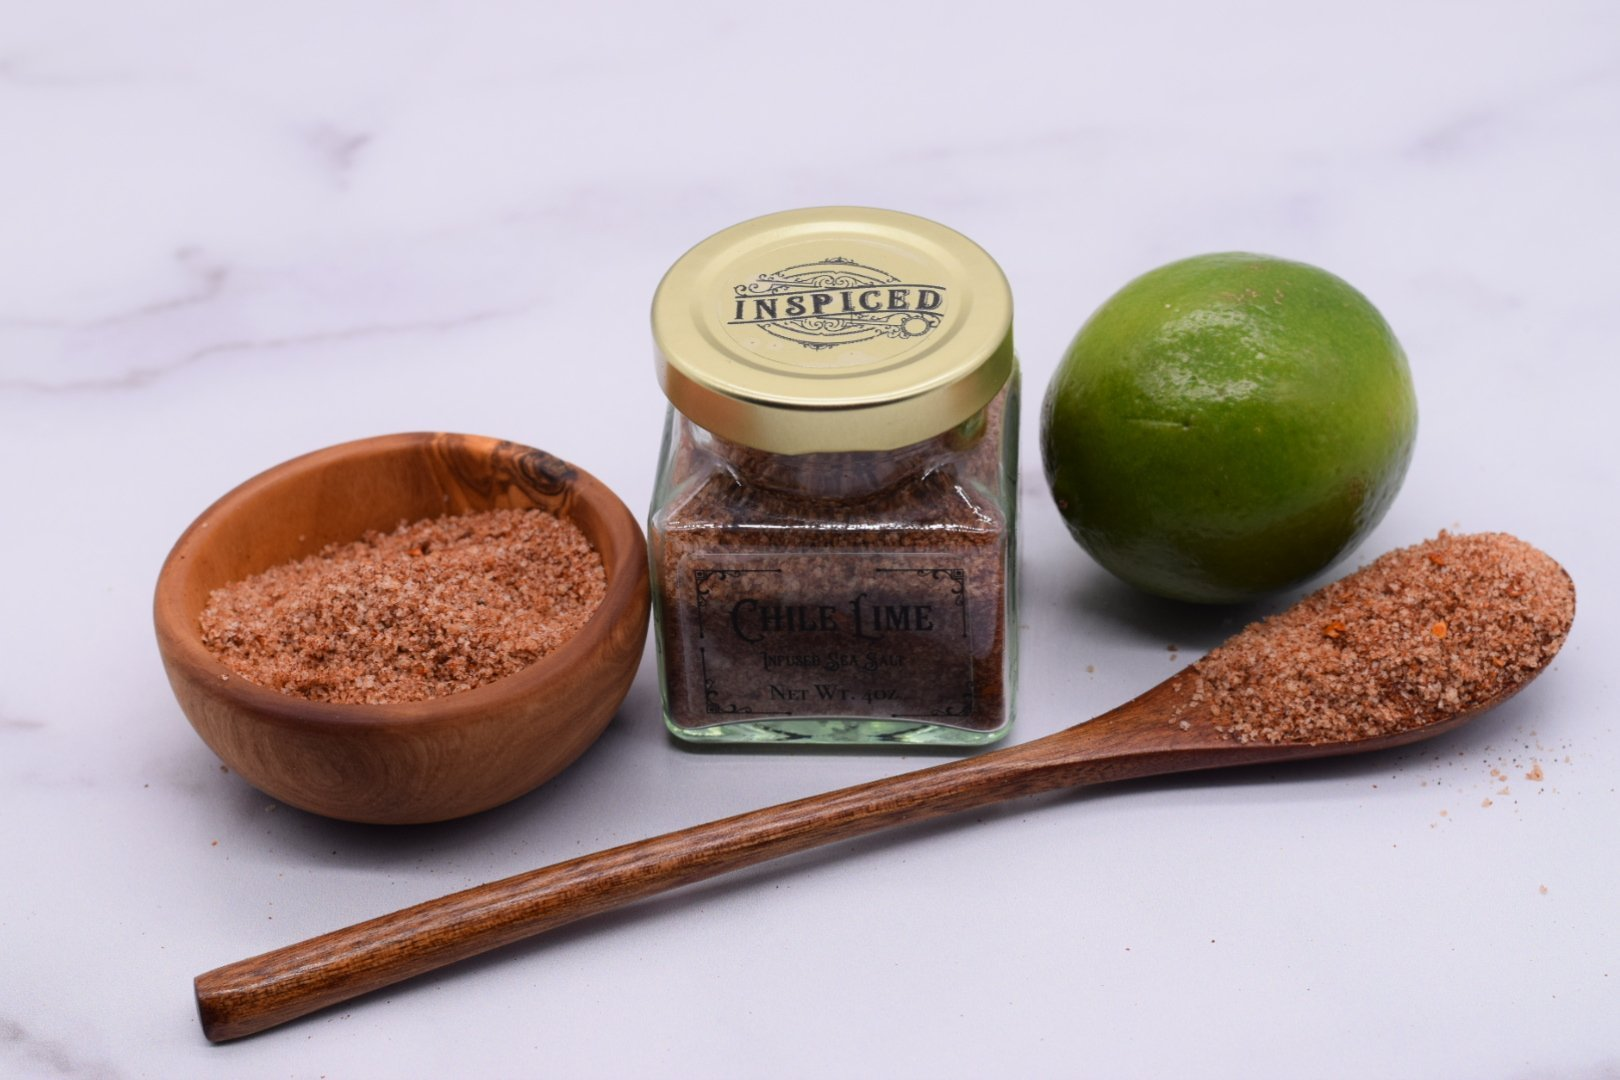 Chile Lime Salt Blend - Inspiced.com